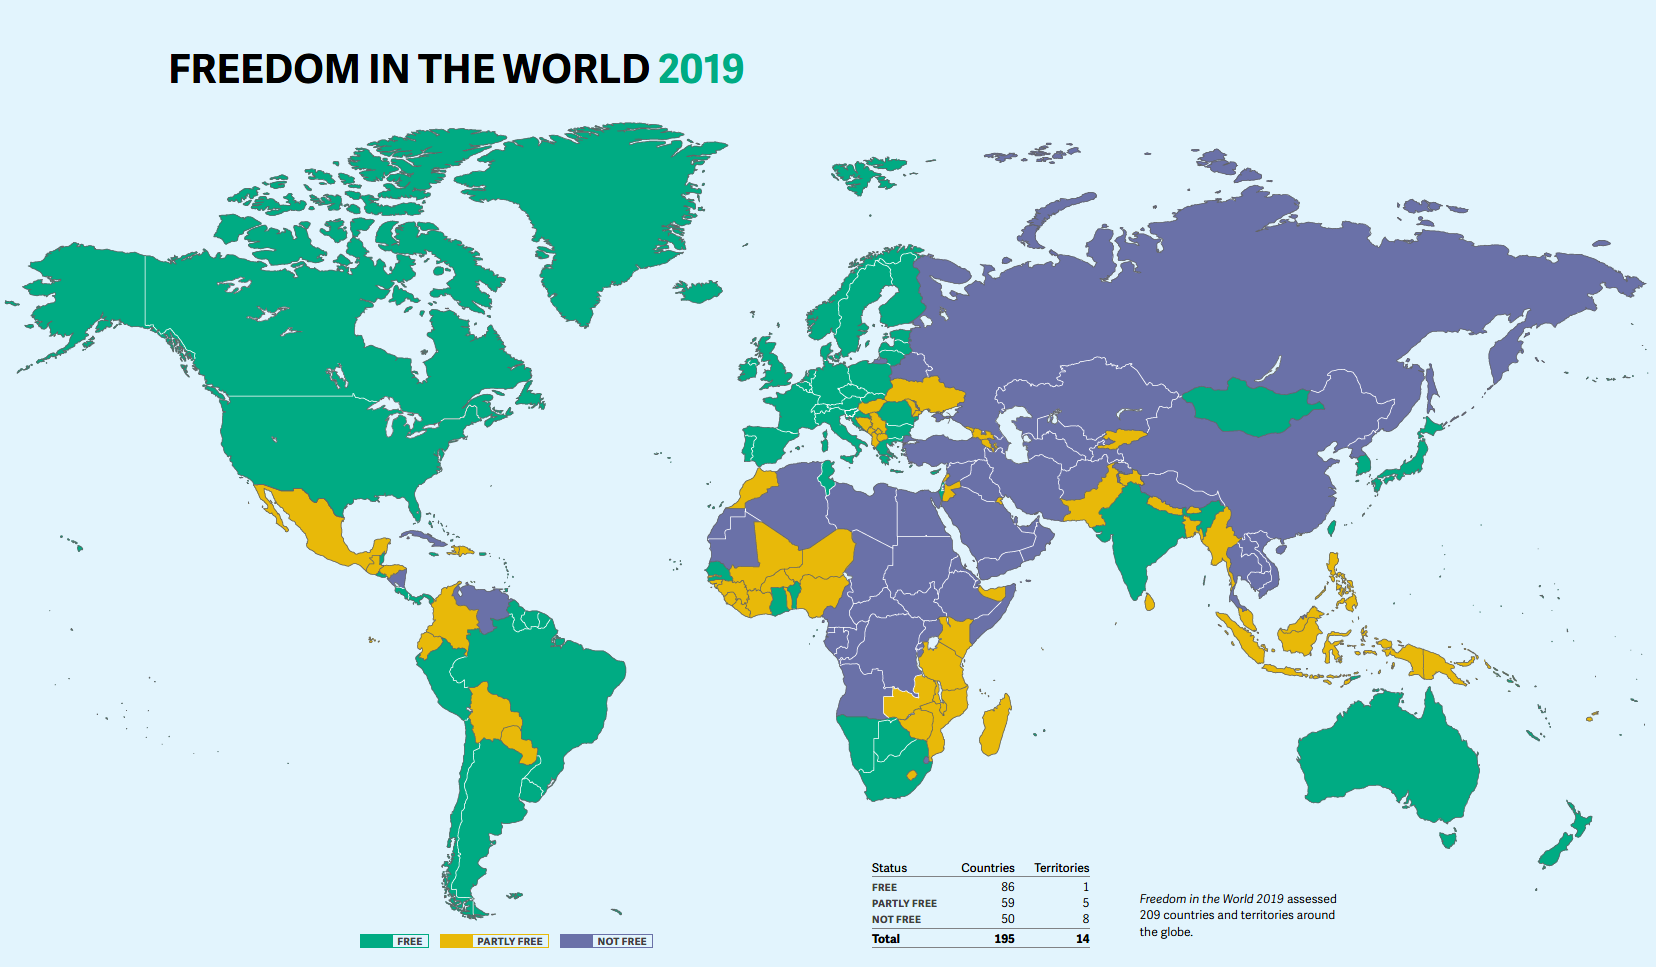 Freedom in the World Map 2019